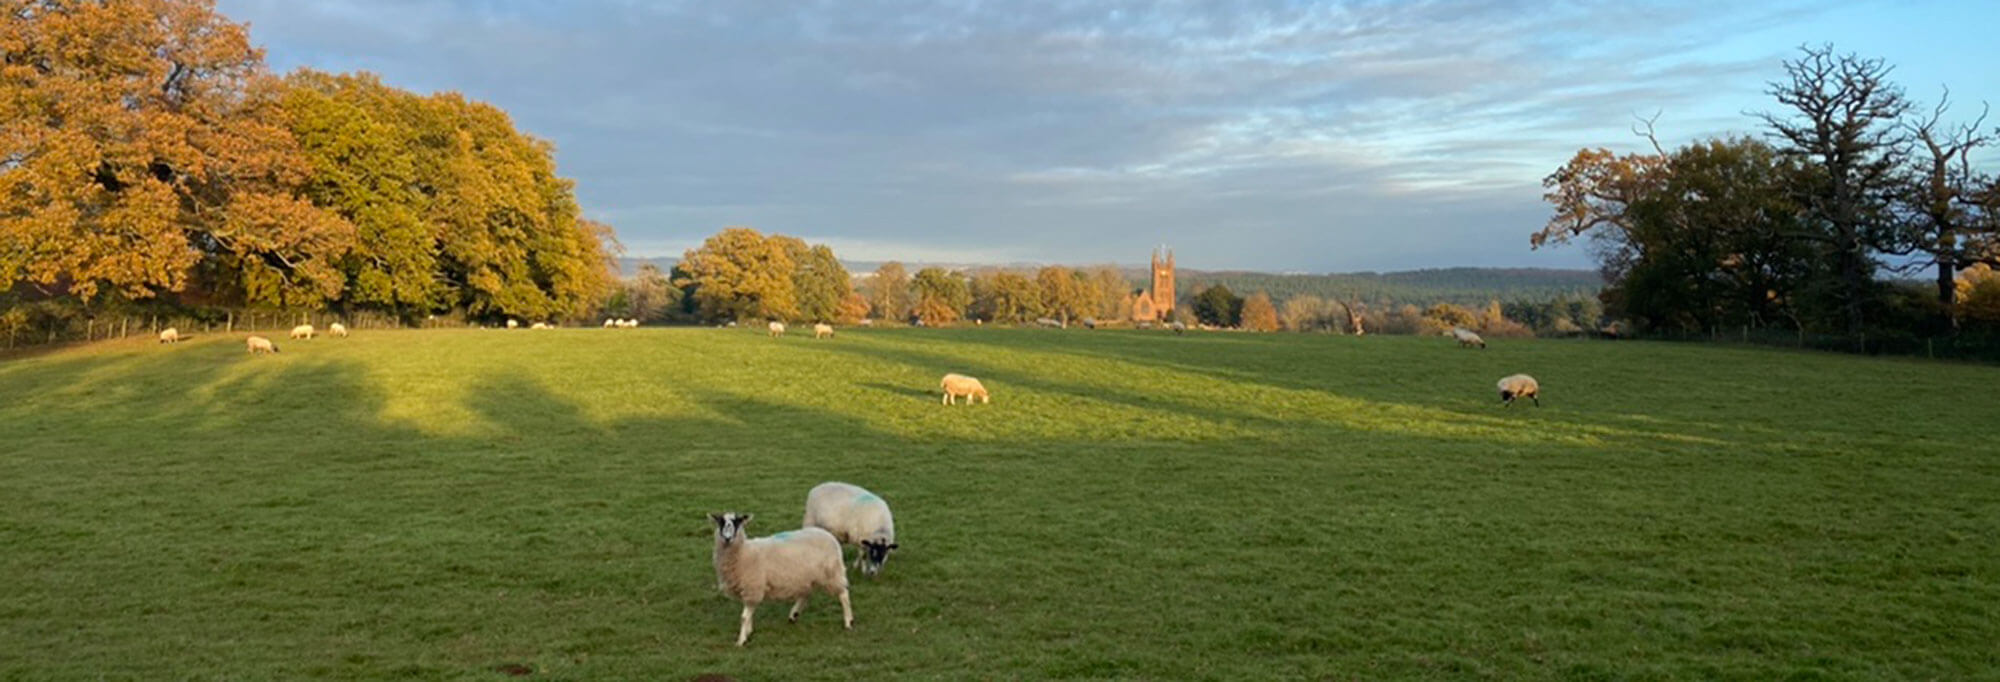 Sheep grazing at Enville